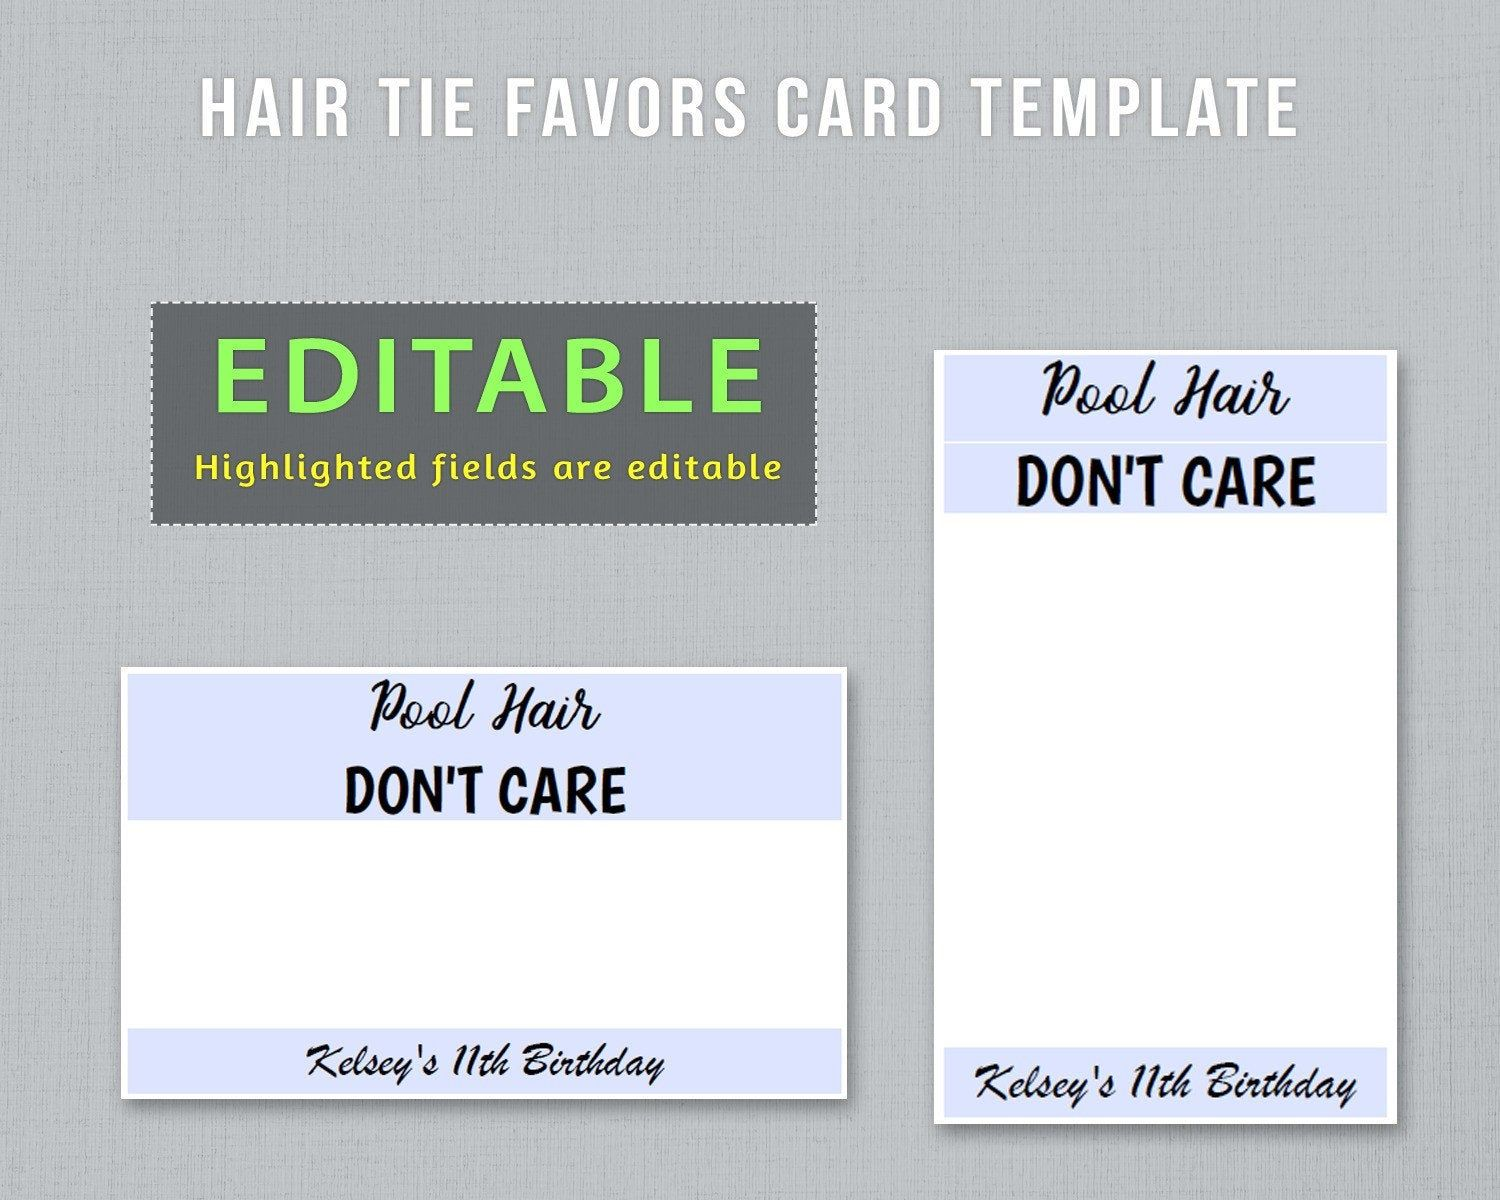 Editable Hair Tie Favors Card Template To Have And To Hold Etsy Card Template Pool Hairstyles Hair Ties